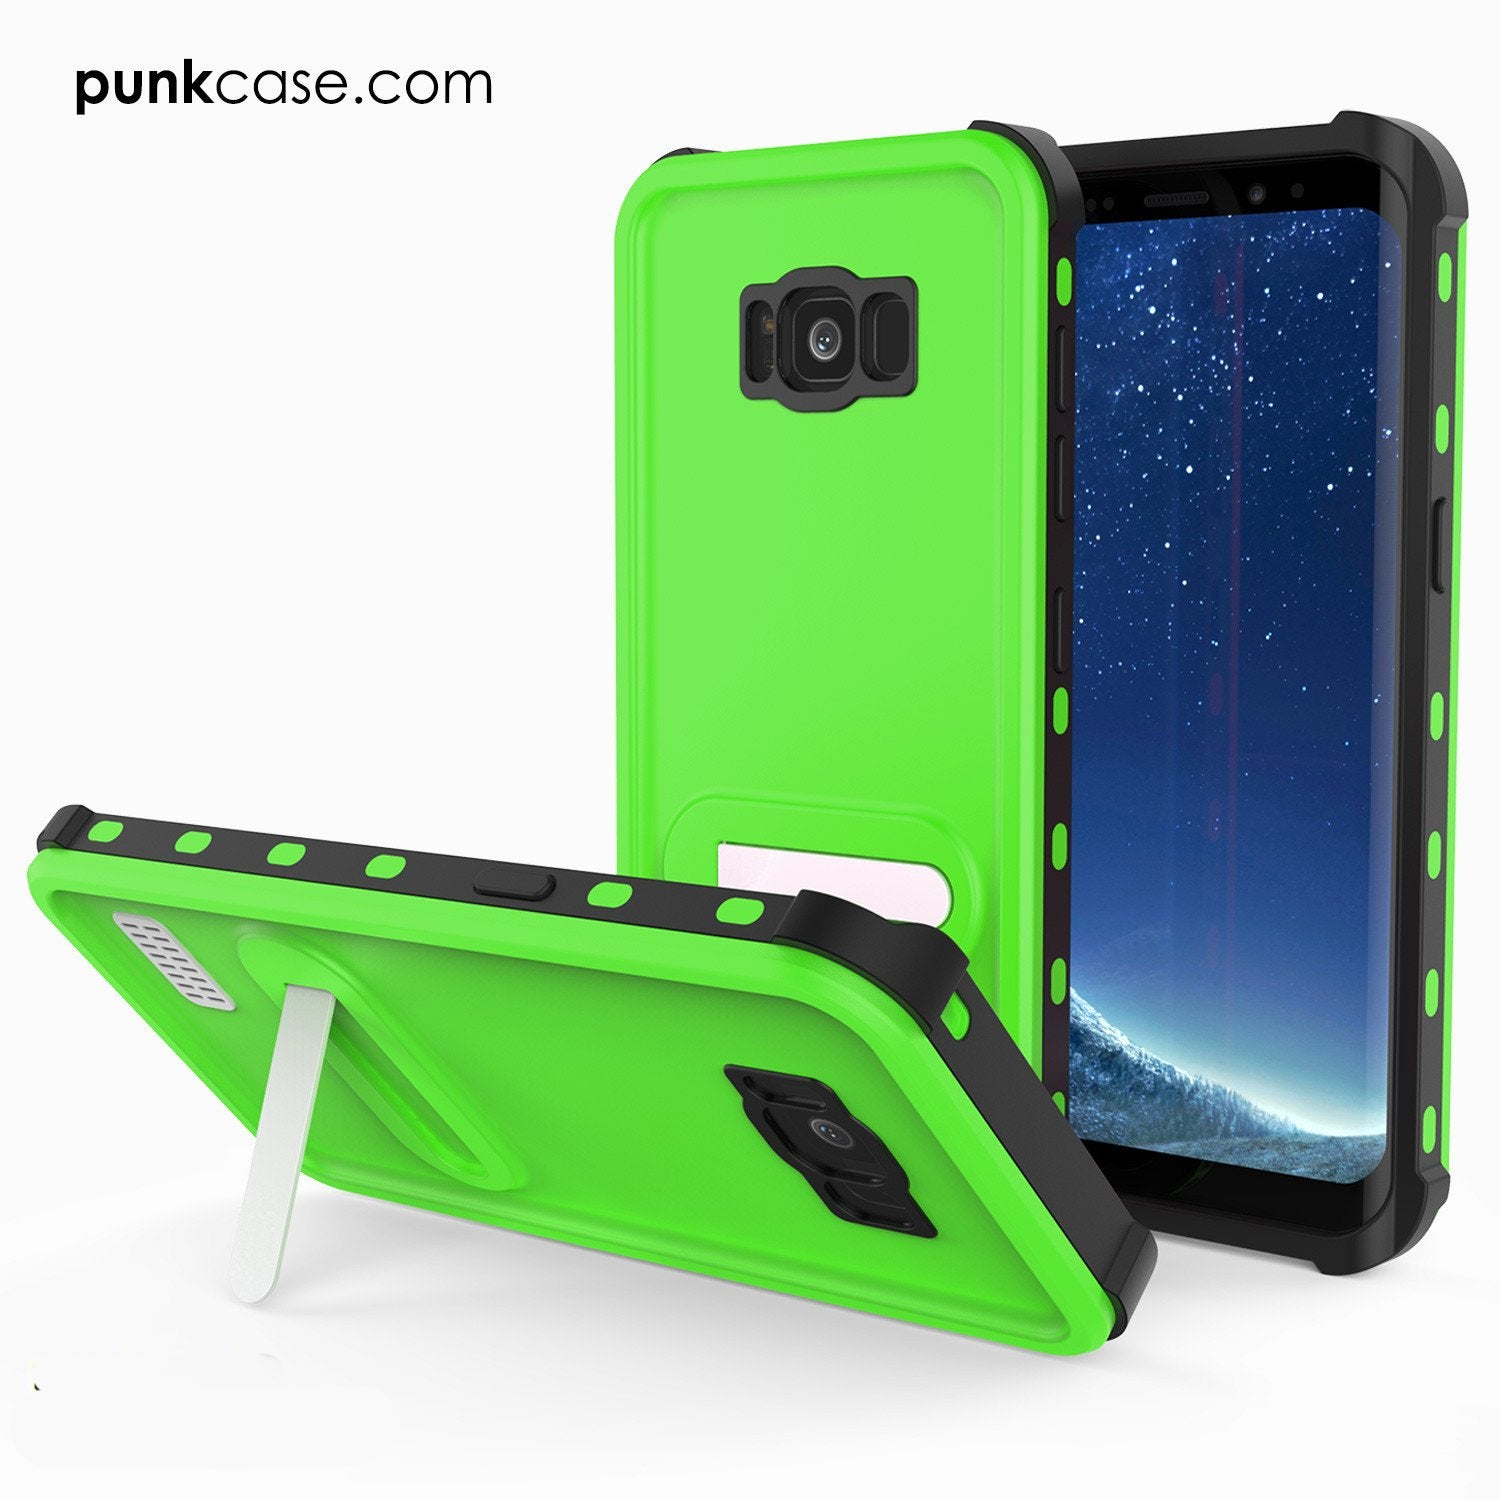 Galaxy S8 Punkcase KickStud Series W/Built-In Kickstand Case, Green